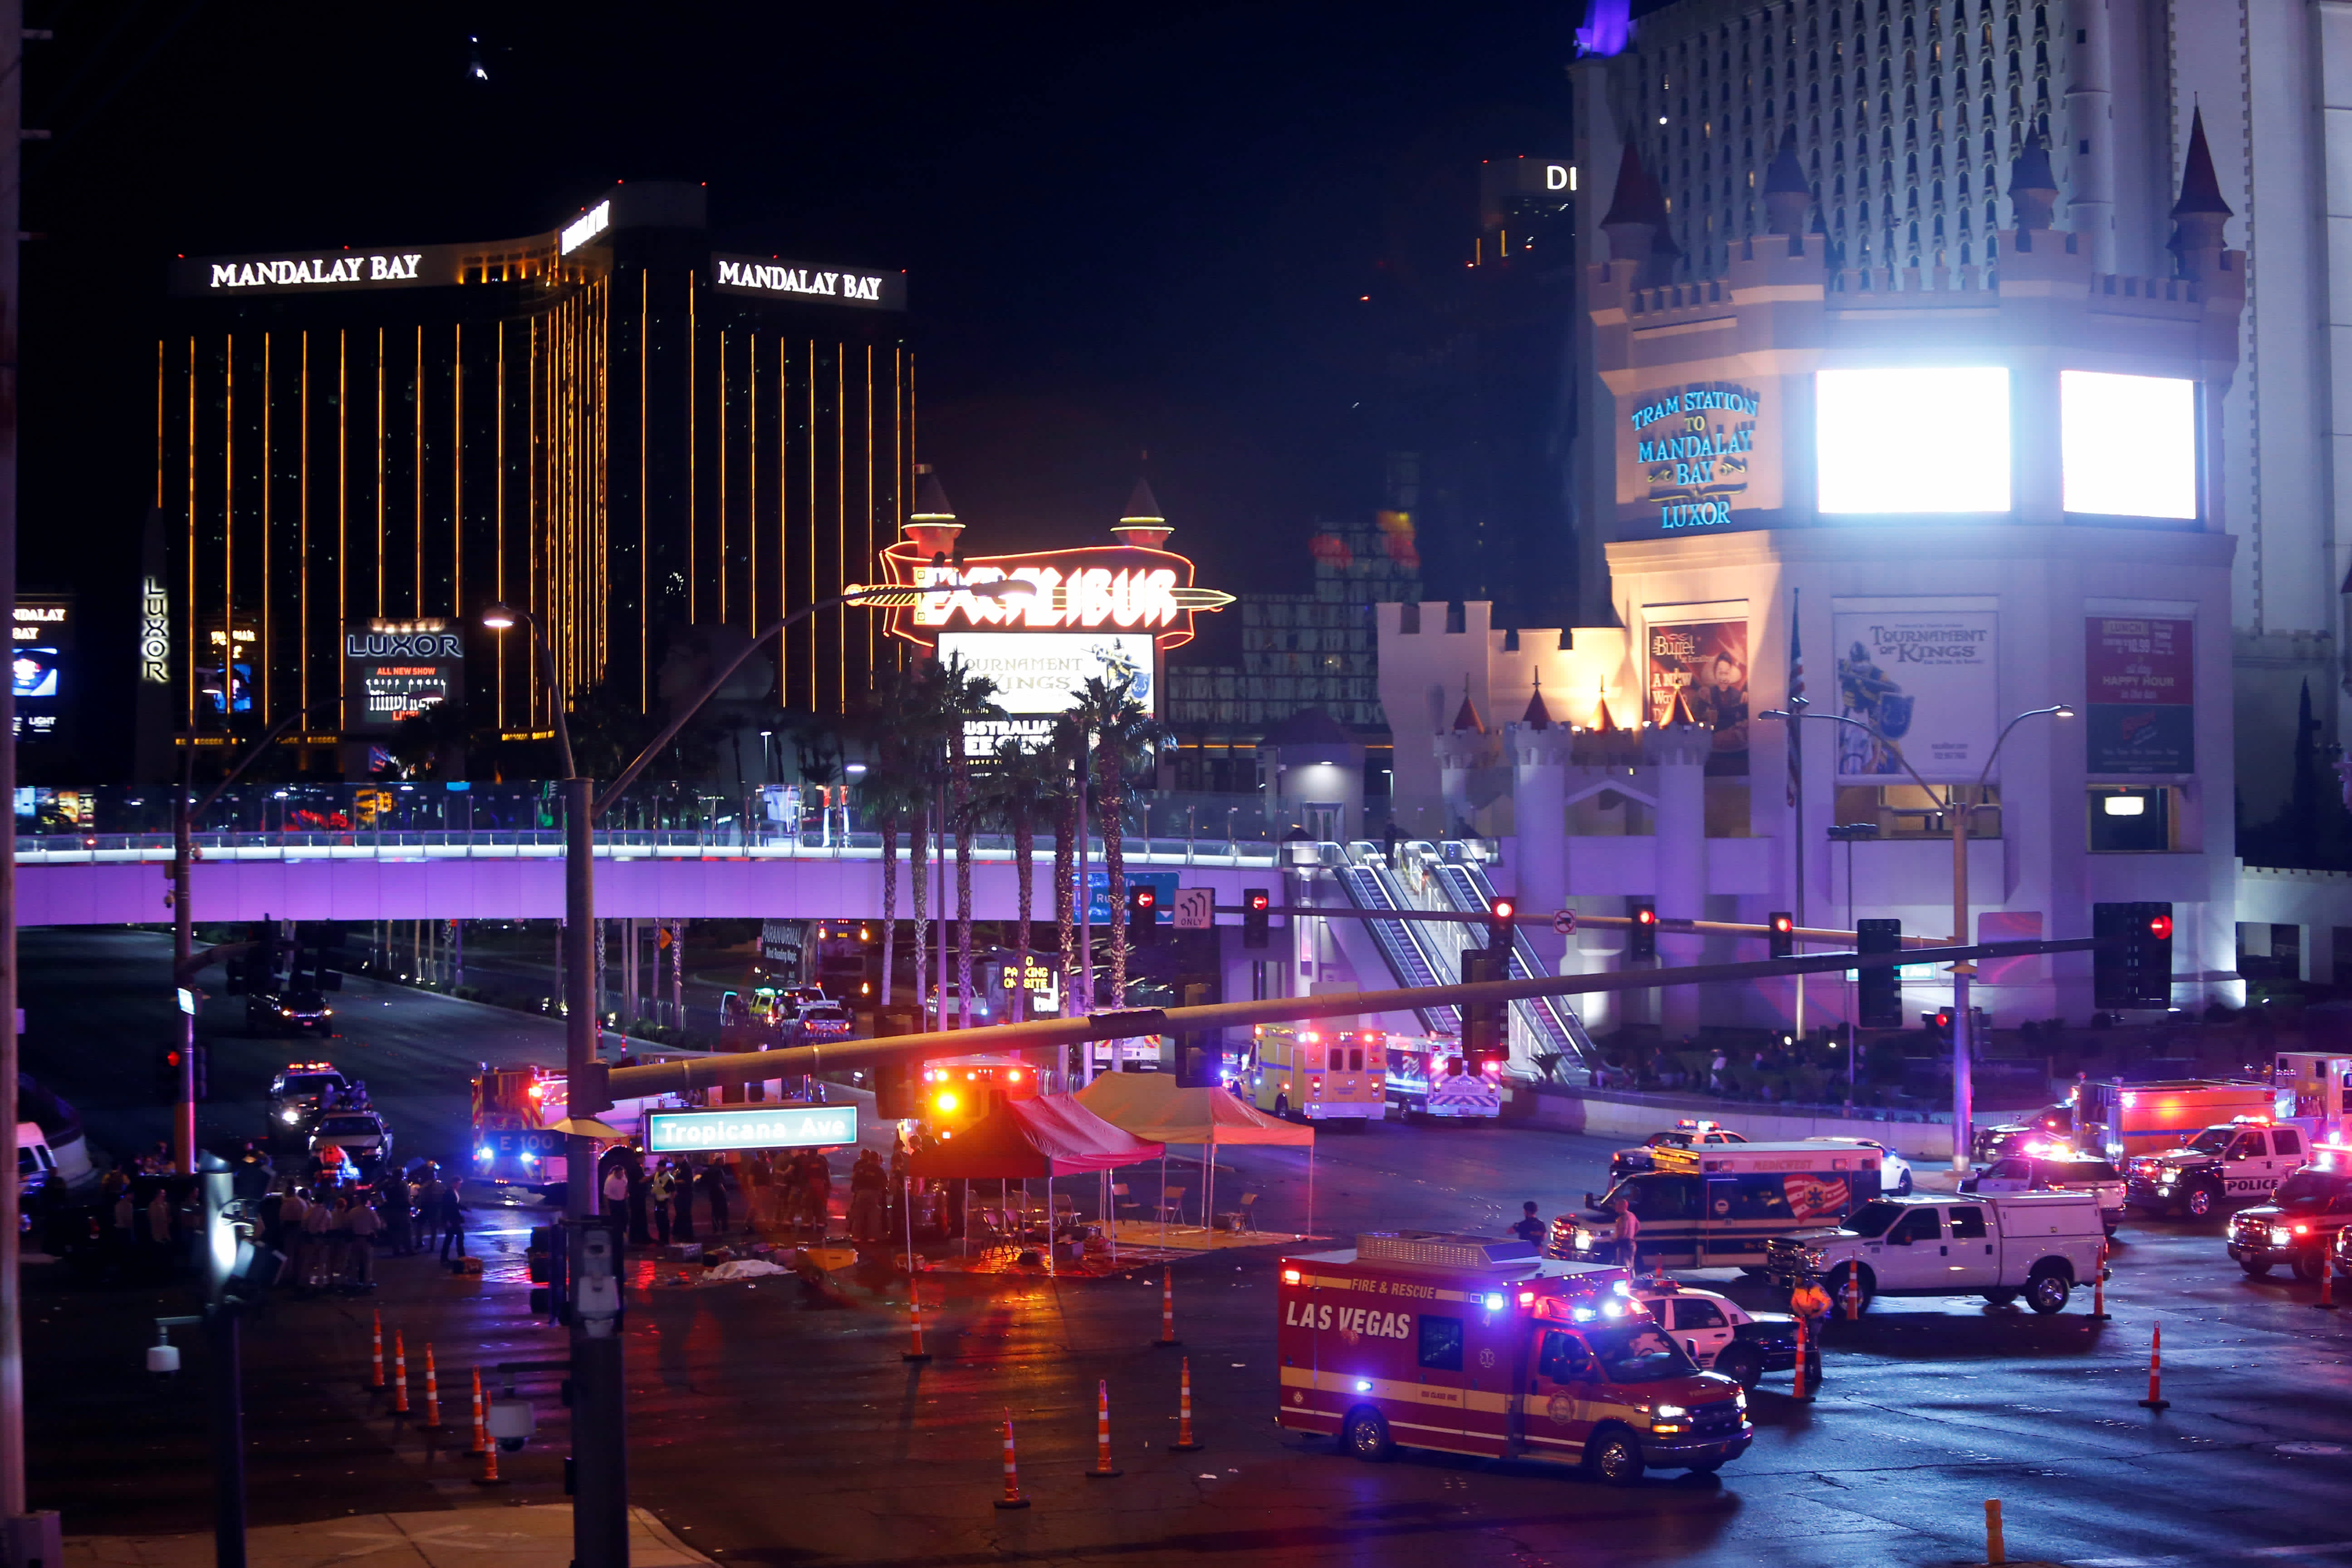 Las Vegas Police and medical workers stage after a mass shooting at a music festival in Las Vegas (STEVE MARCUS / REUTERS)